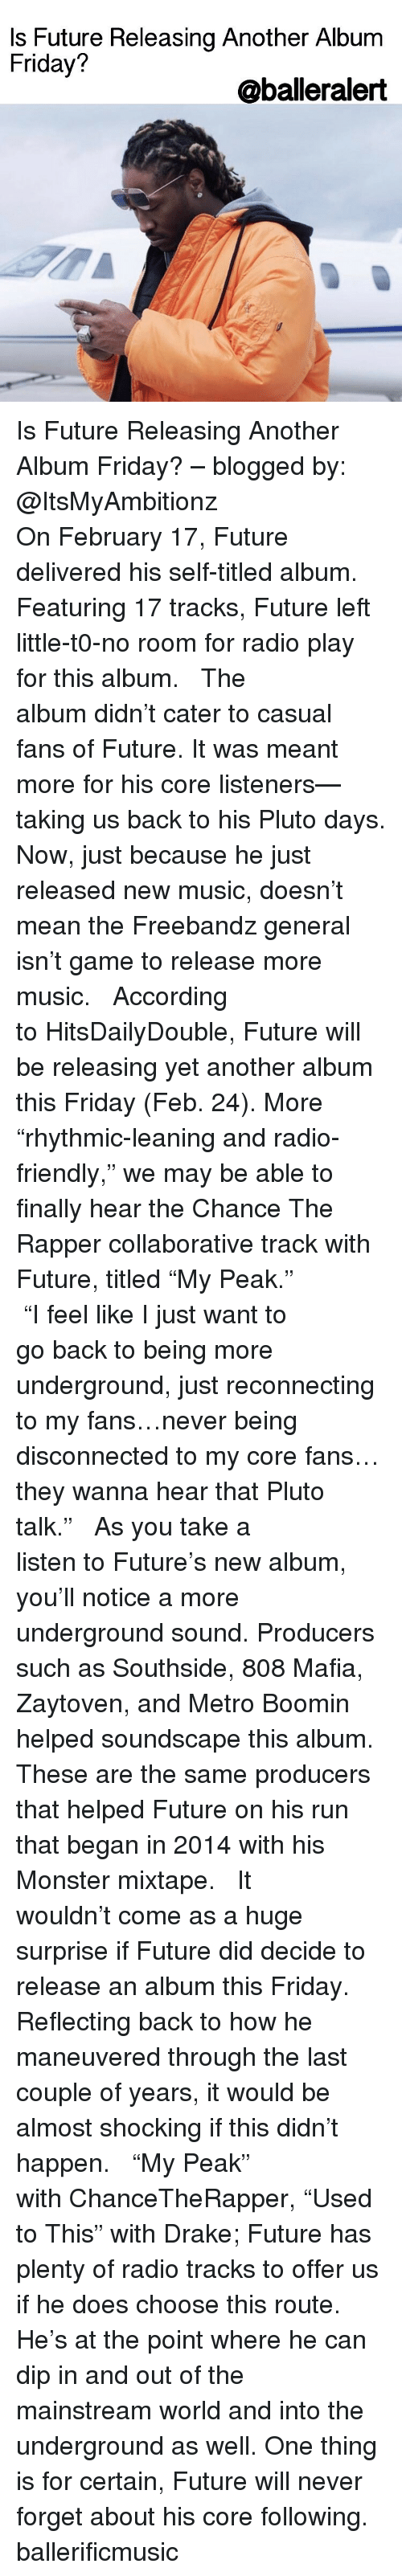 """Freebandz: Is Future Releasing Another Album  Friday?  @balleralert Is Future Releasing Another Album Friday? – blogged by: @ItsMyAmbitionz ⠀⠀⠀⠀⠀⠀⠀⠀⠀ ⠀⠀⠀⠀⠀⠀⠀⠀⠀ On February 17, Future delivered his self-titled album. Featuring 17 tracks, Future left little-t0-no room for radio play for this album. ⠀⠀⠀⠀⠀⠀⠀⠀⠀ ⠀⠀⠀⠀⠀⠀⠀⠀⠀ The album didn't cater to casual fans of Future. It was meant more for his core listeners—taking us back to his Pluto days. Now, just because he just released new music, doesn't mean the Freebandz general isn't game to release more music. ⠀⠀⠀⠀⠀⠀⠀⠀⠀ ⠀⠀⠀⠀⠀⠀⠀⠀⠀ According to HitsDailyDouble, Future will be releasing yet another album this Friday (Feb. 24). More """"rhythmic-leaning and radio-friendly,"""" we may be able to finally hear the Chance The Rapper collaborative track with Future, titled """"My Peak."""" ⠀⠀⠀⠀⠀⠀⠀⠀⠀ ⠀⠀⠀⠀⠀⠀⠀⠀⠀ """"I feel like I just want to go back to being more underground, just reconnecting to my fans…never being disconnected to my core fans…they wanna hear that Pluto talk."""" ⠀⠀⠀⠀⠀⠀⠀⠀⠀ ⠀⠀⠀⠀⠀⠀⠀⠀⠀ As you take a listen to Future's new album, you'll notice a more underground sound. Producers such as Southside, 808 Mafia, Zaytoven, and Metro Boomin helped soundscape this album. These are the same producers that helped Future on his run that began in 2014 with his Monster mixtape. ⠀⠀⠀⠀⠀⠀⠀⠀⠀ ⠀⠀⠀⠀⠀⠀⠀⠀⠀ It wouldn't come as a huge surprise if Future did decide to release an album this Friday. Reflecting back to how he maneuvered through the last couple of years, it would be almost shocking if this didn't happen. ⠀⠀⠀⠀⠀⠀⠀⠀⠀ ⠀⠀⠀⠀⠀⠀⠀⠀⠀ """"My Peak"""" with ChanceTheRapper, """"Used to This"""" with Drake; Future has plenty of radio tracks to offer us if he does choose this route. He's at the point where he can dip in and out of the mainstream world and into the underground as well. One thing is for certain, Future will never forget about his core following. ballerificmusic"""